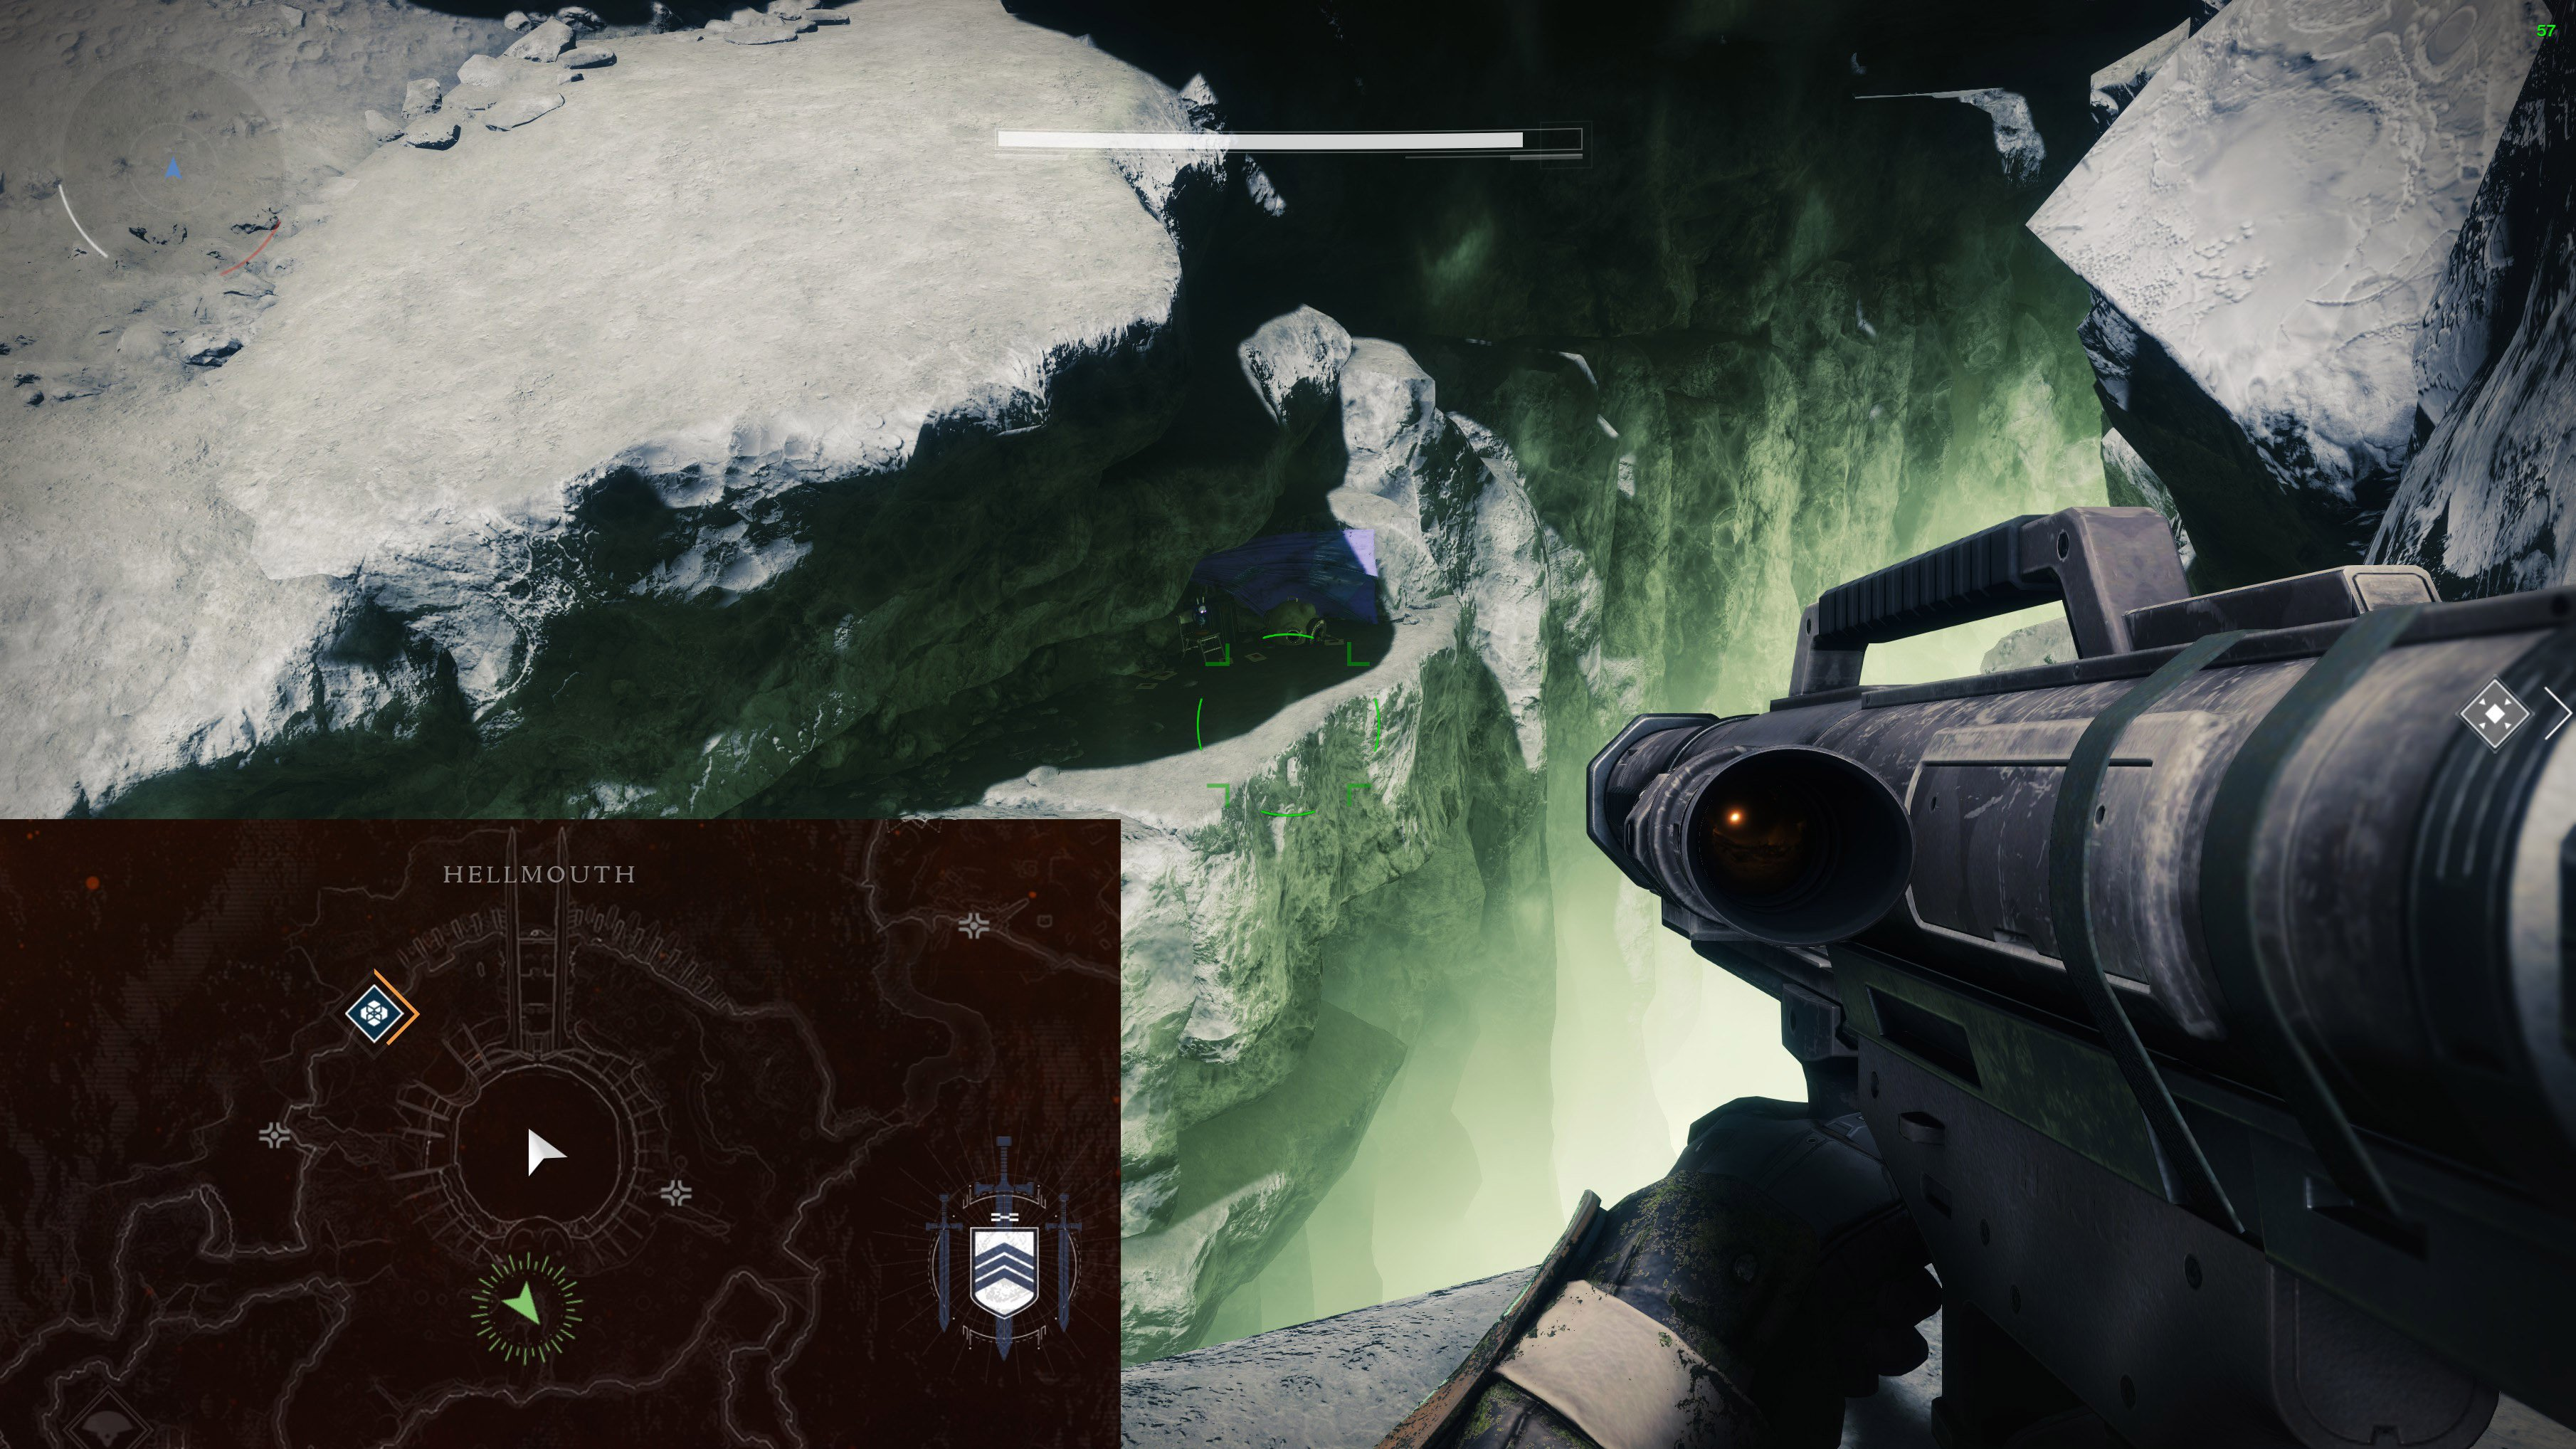 This Destiny 2 Jade Rabbit in the Hellmouth area is chilling on a ledge